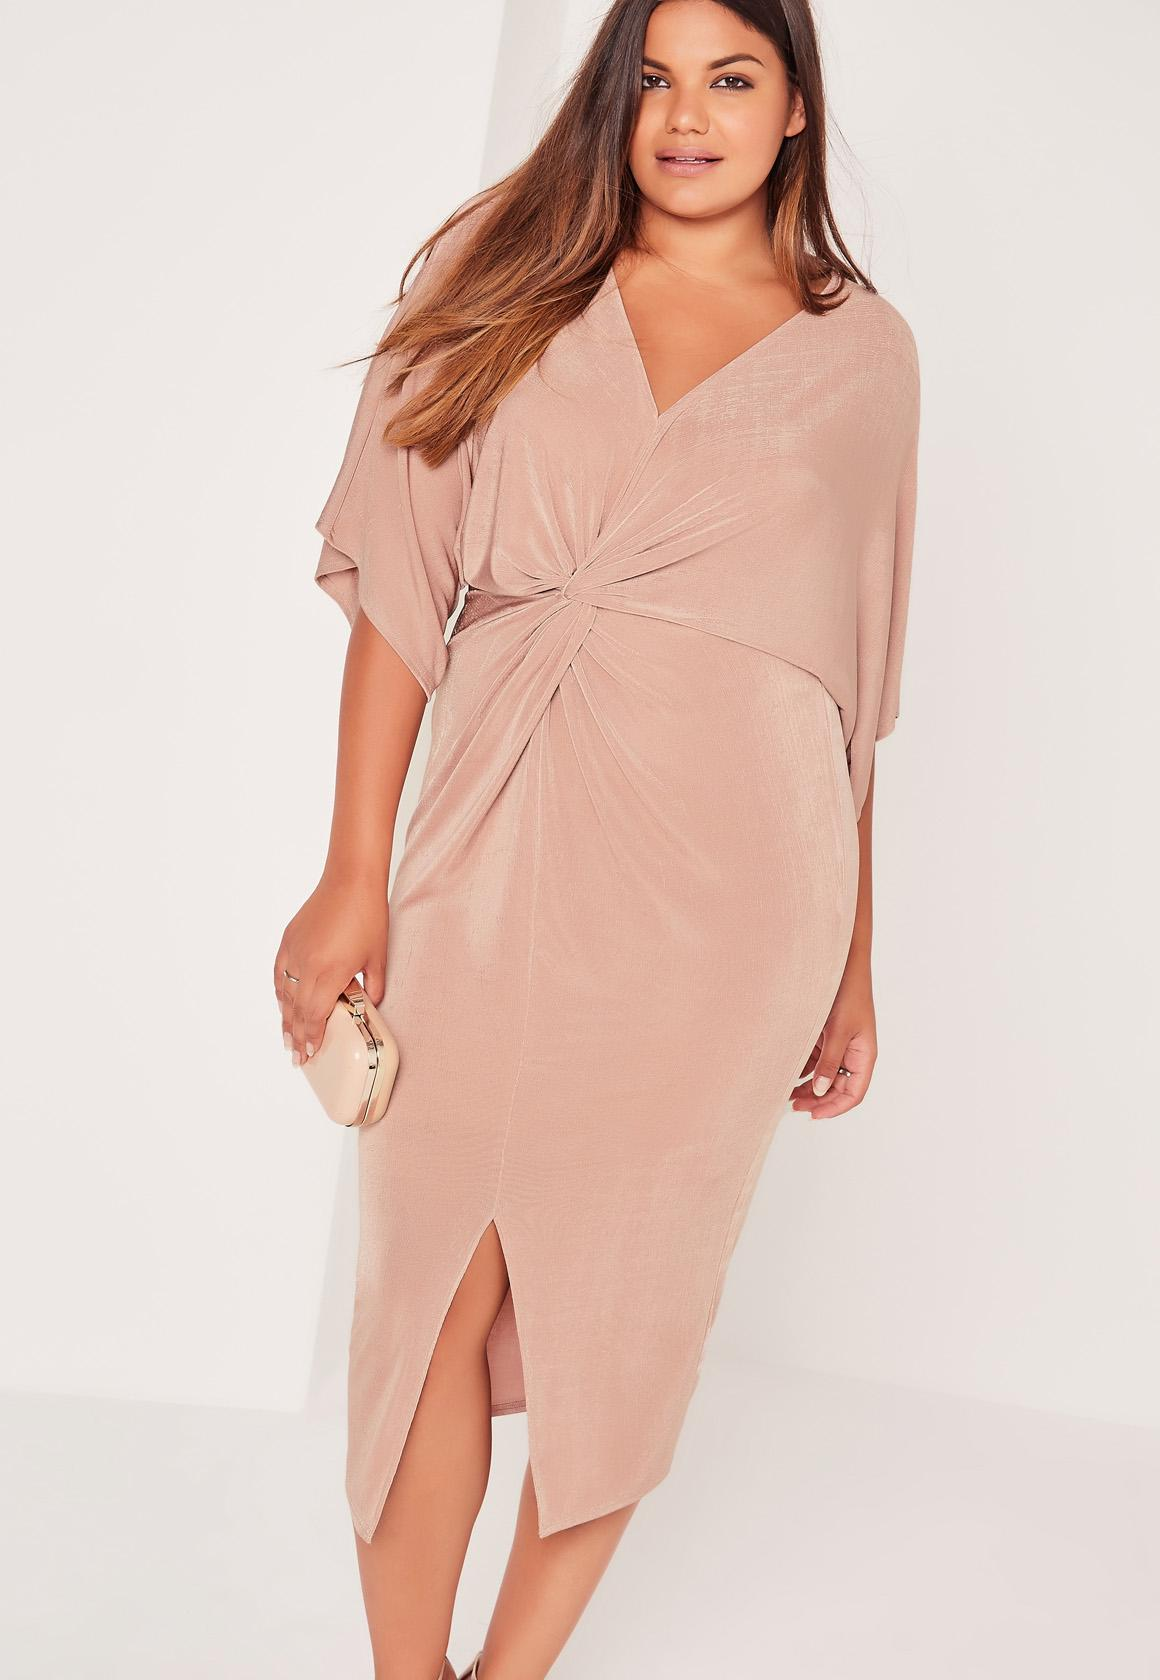 New Year S Eve Dresses For Curvy Women 2018 Plus Size